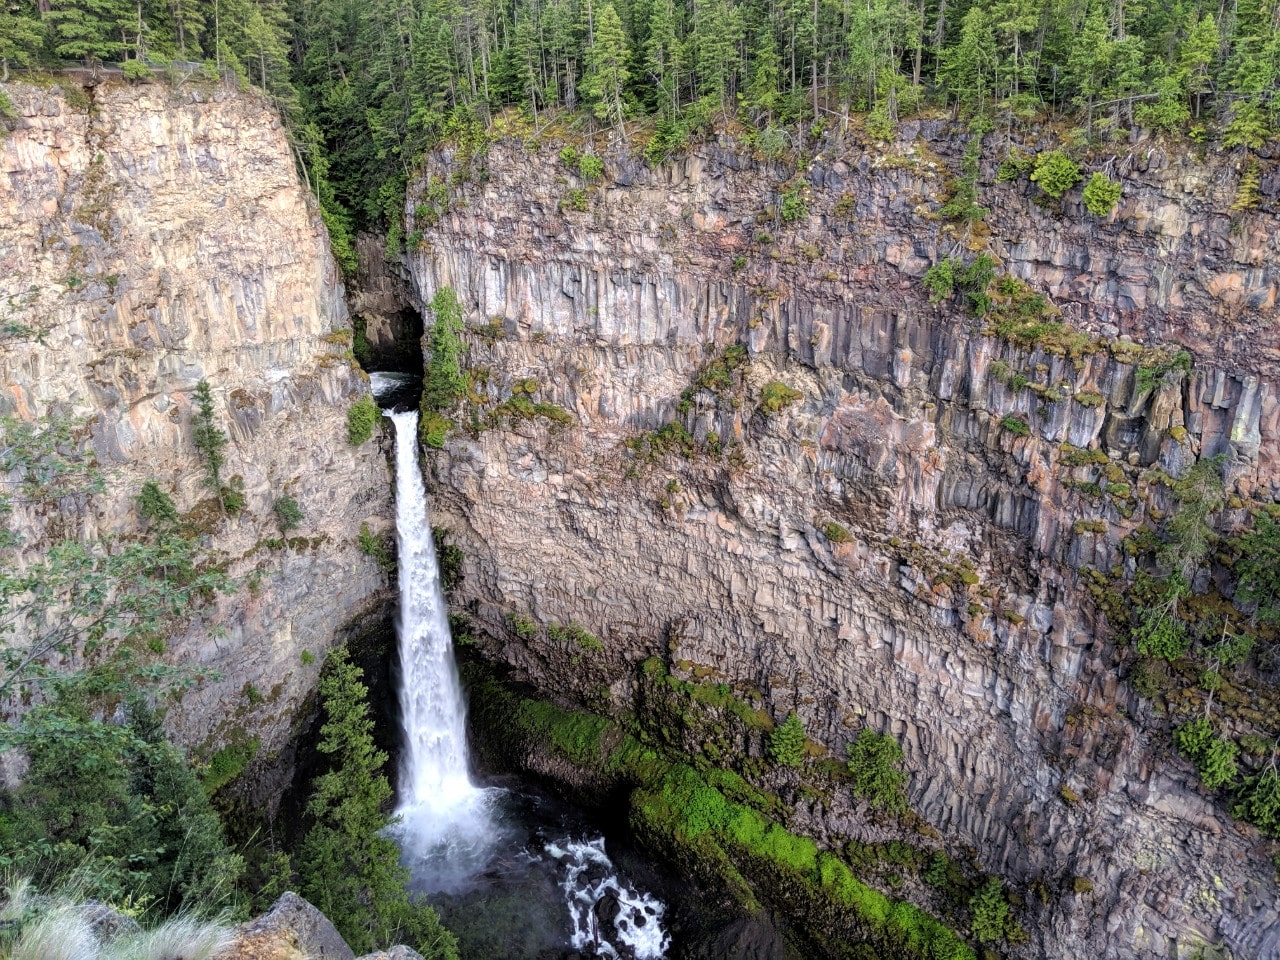 Rushing though a narrow rock gap, the dramatic Spahats Creek Falls pours 75m straight into a yawning ravine